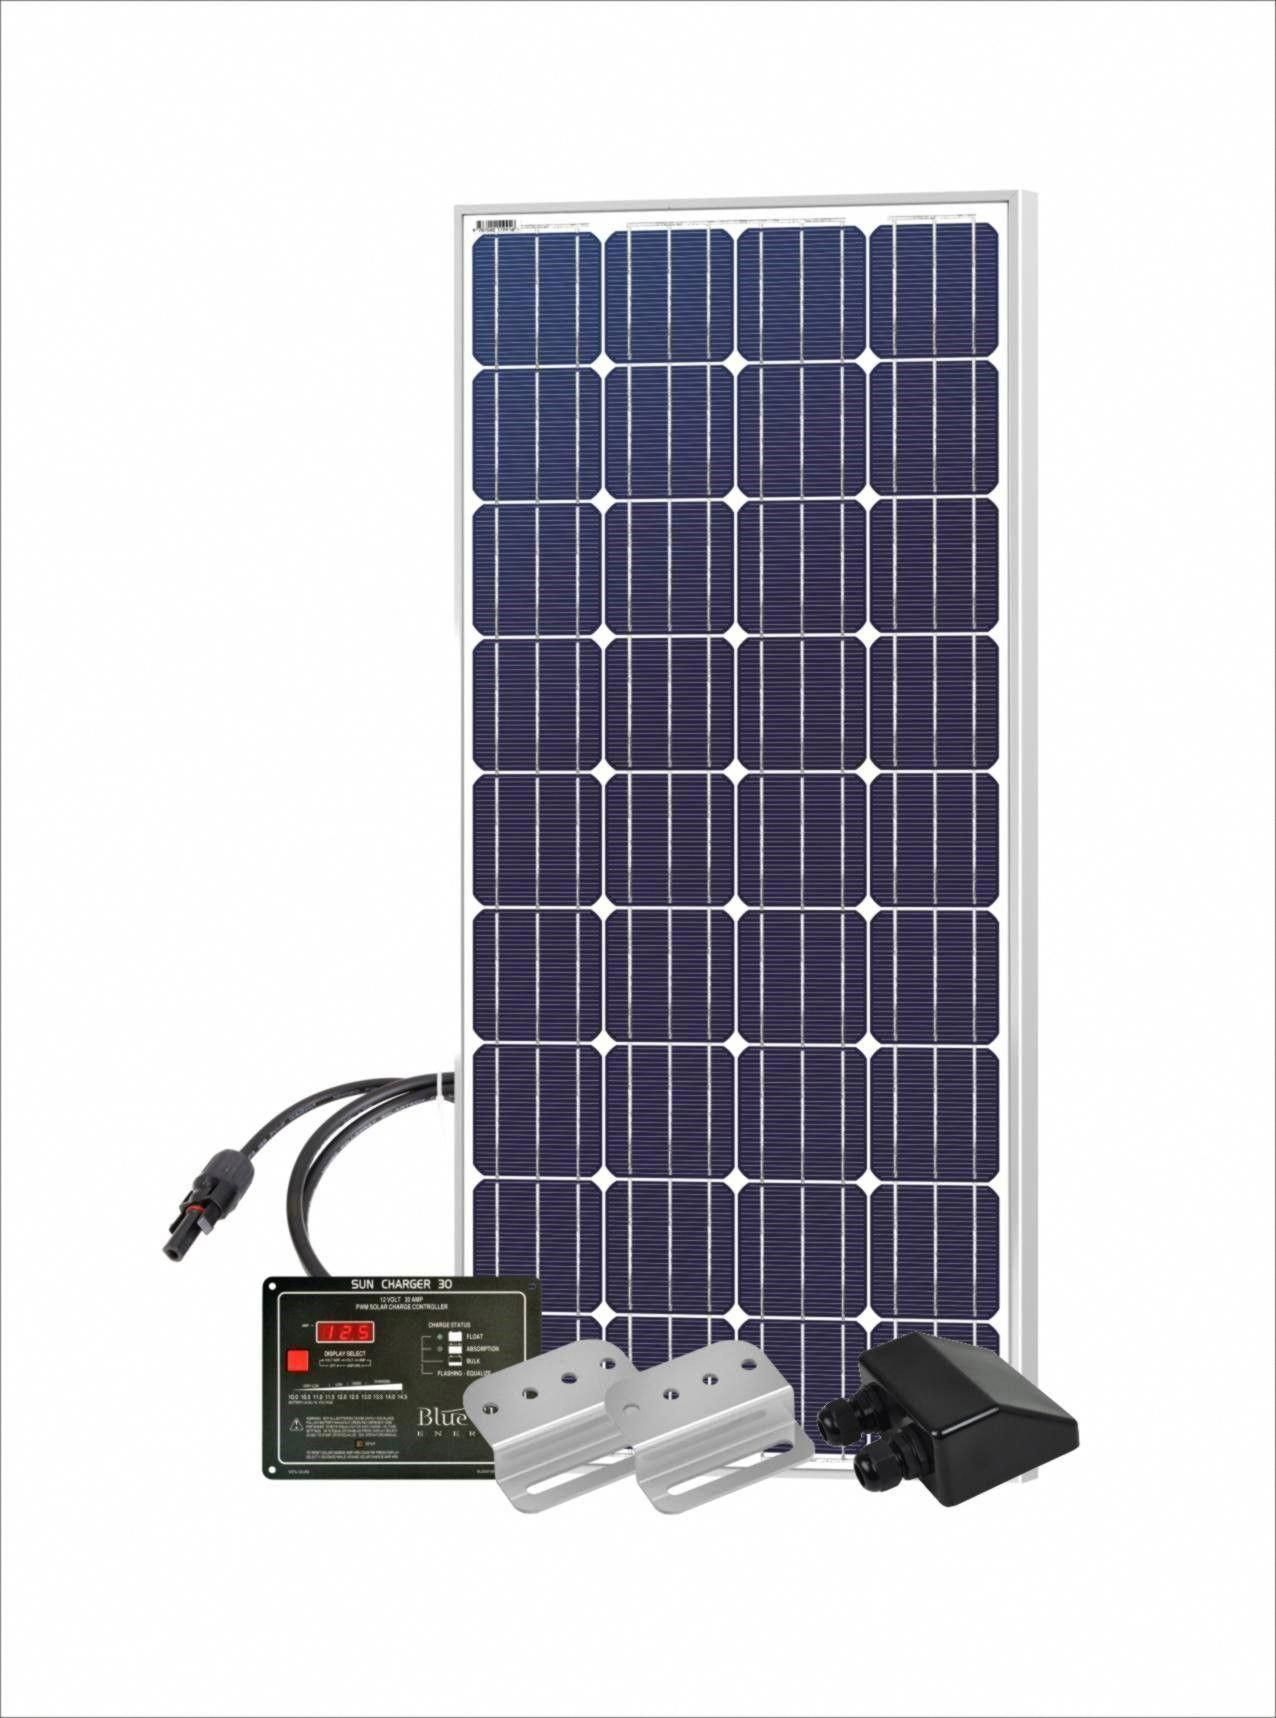 150 Watt 12 Volt Dc Rv Solar Panel Starter Kit With 150w Solar Panel Blue Sky Energy Sc30 Charge Controller Sola In 2020 Rv Solar Panels Best Solar Panels Solar Panels